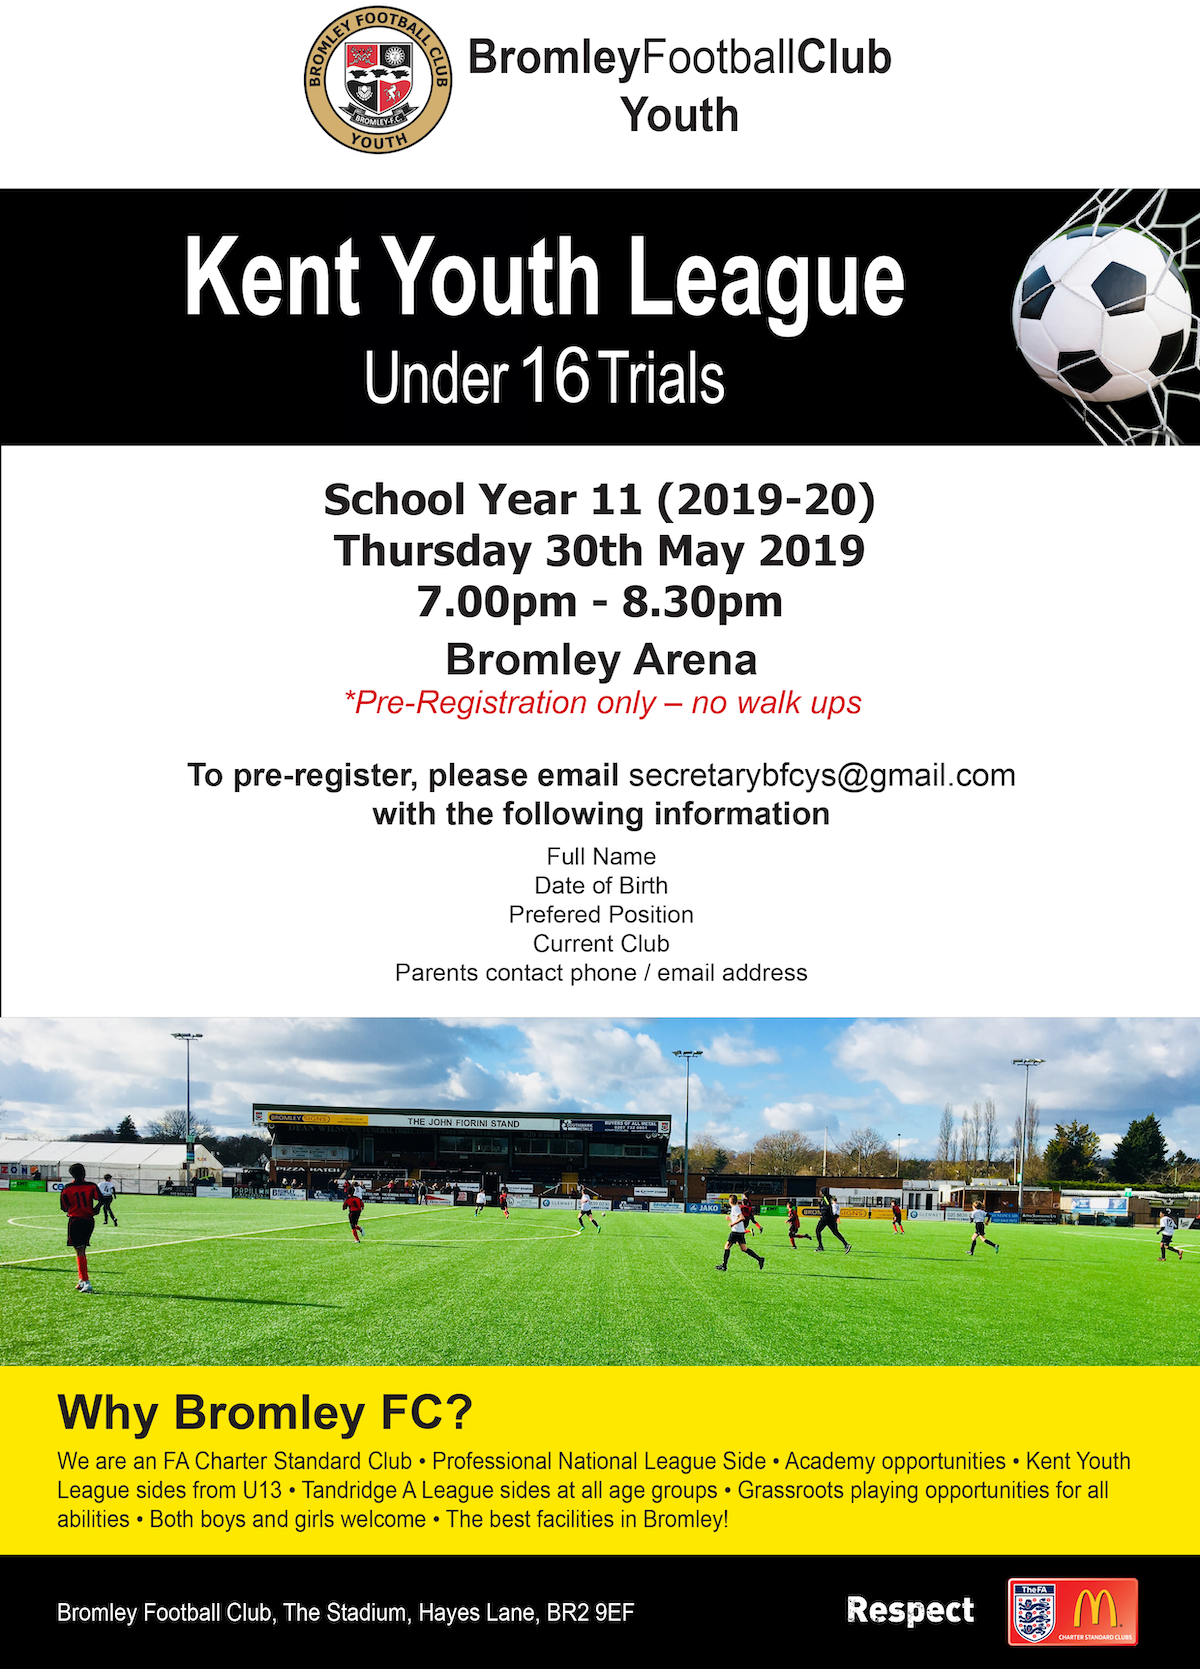 Bromley FC Under 16 Trials